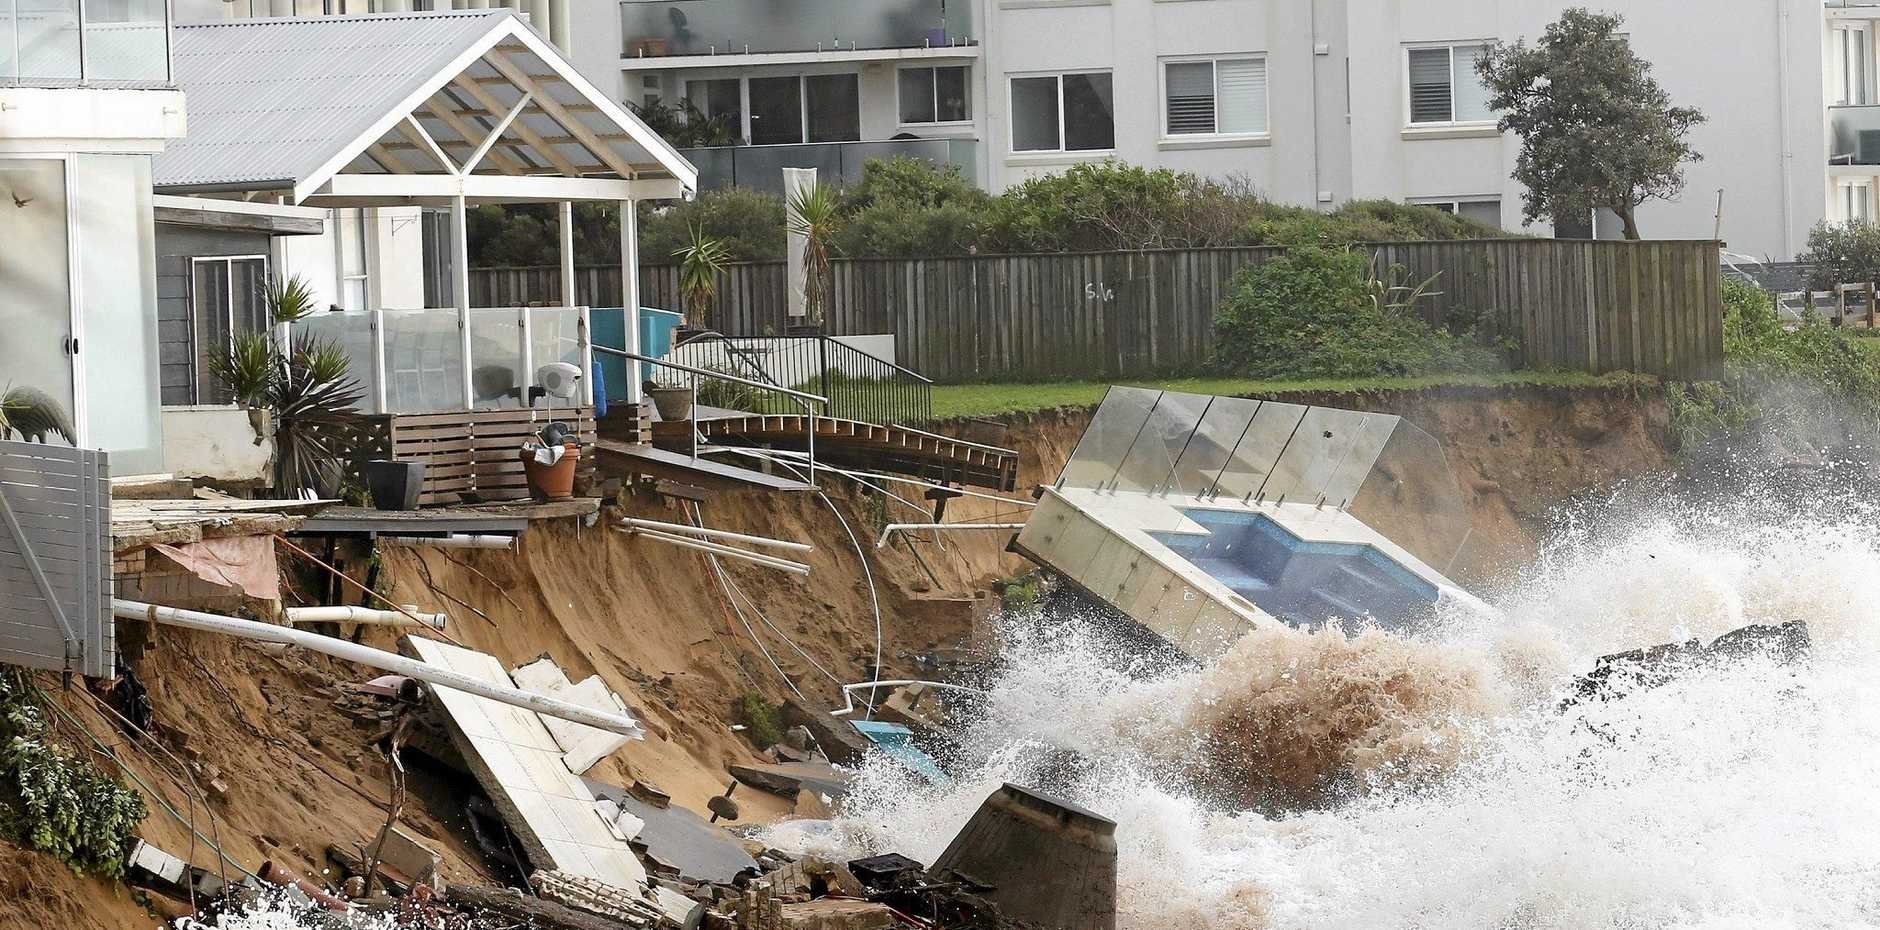 Waves crash against a garden swimming pool that was washed away from a property on the beach front after heavy rain and storms at Collaroy in Sydney's Northern Beaches.